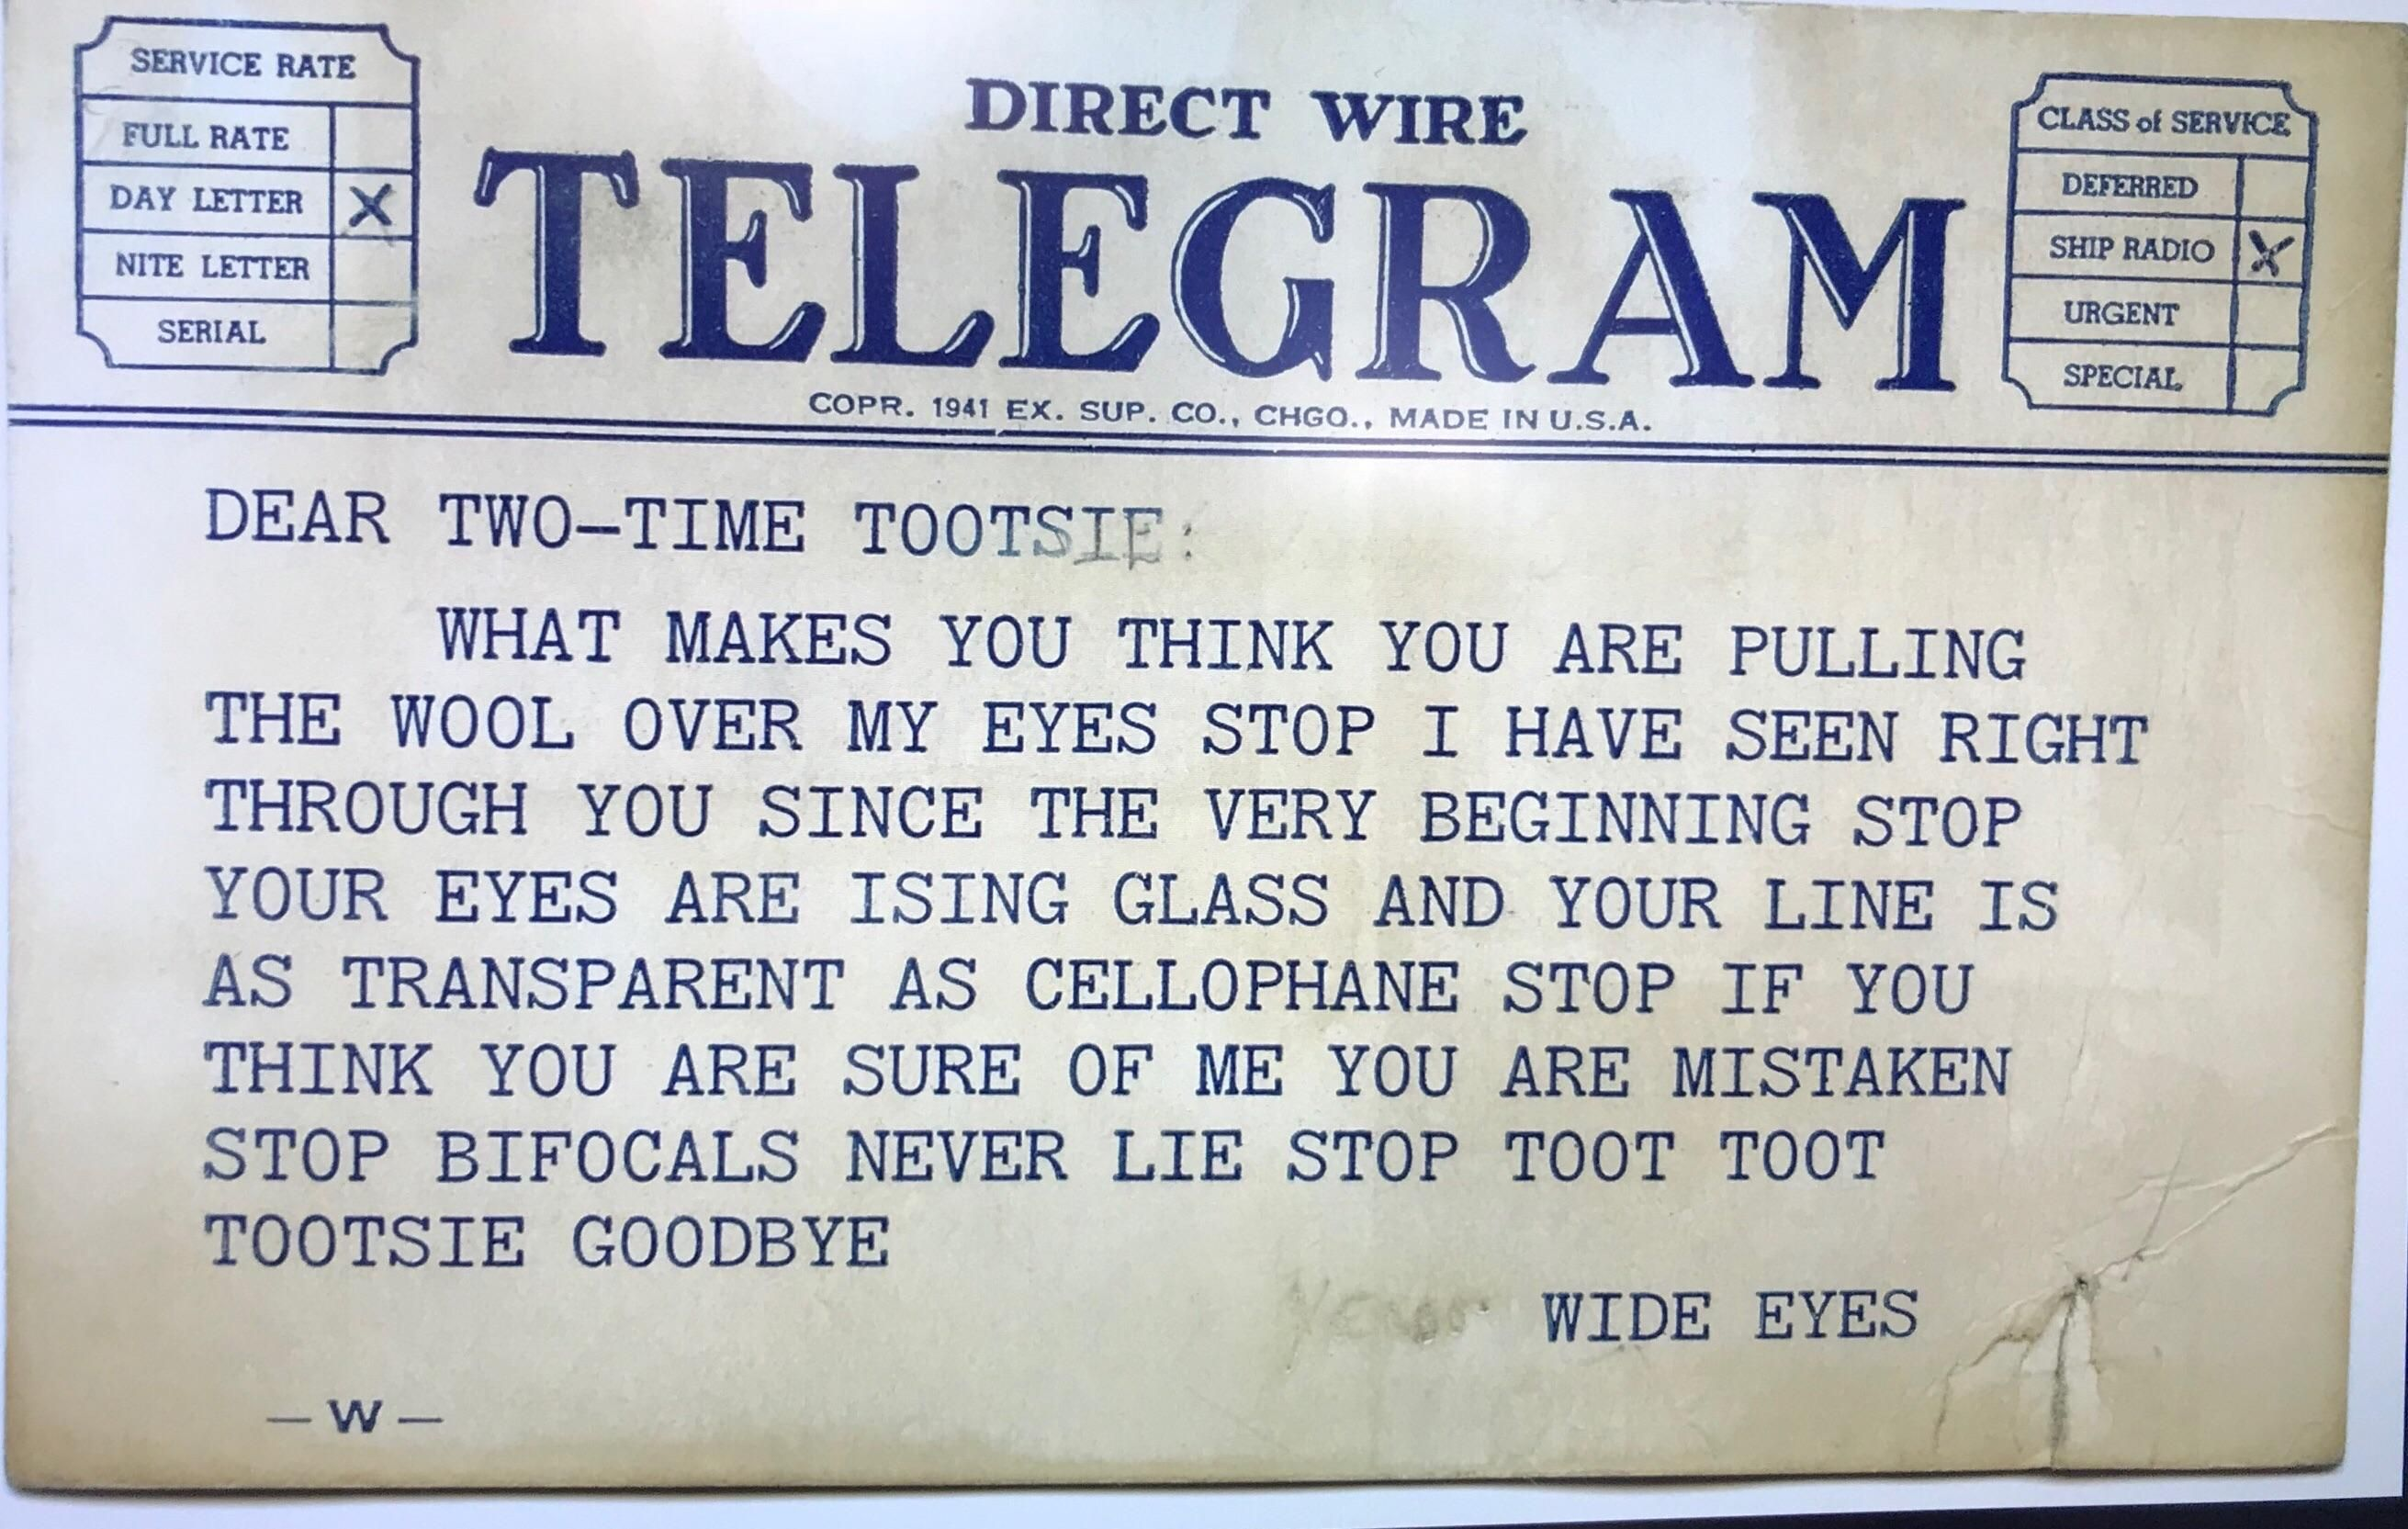 My Wifes Grandmother Broke Up With Her Teenage Boyfriend By Telegram And Kept A Copy All These Years